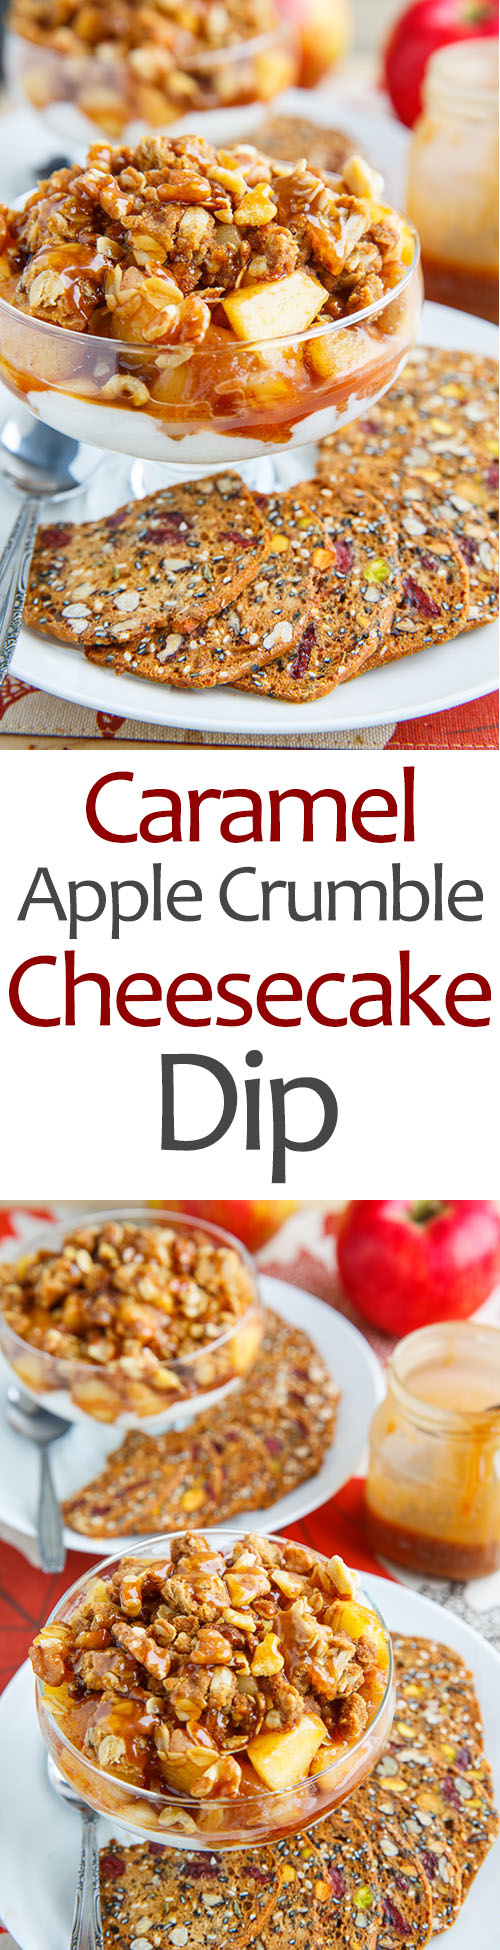 Caramel Apple Crumble Cheesecake Dip